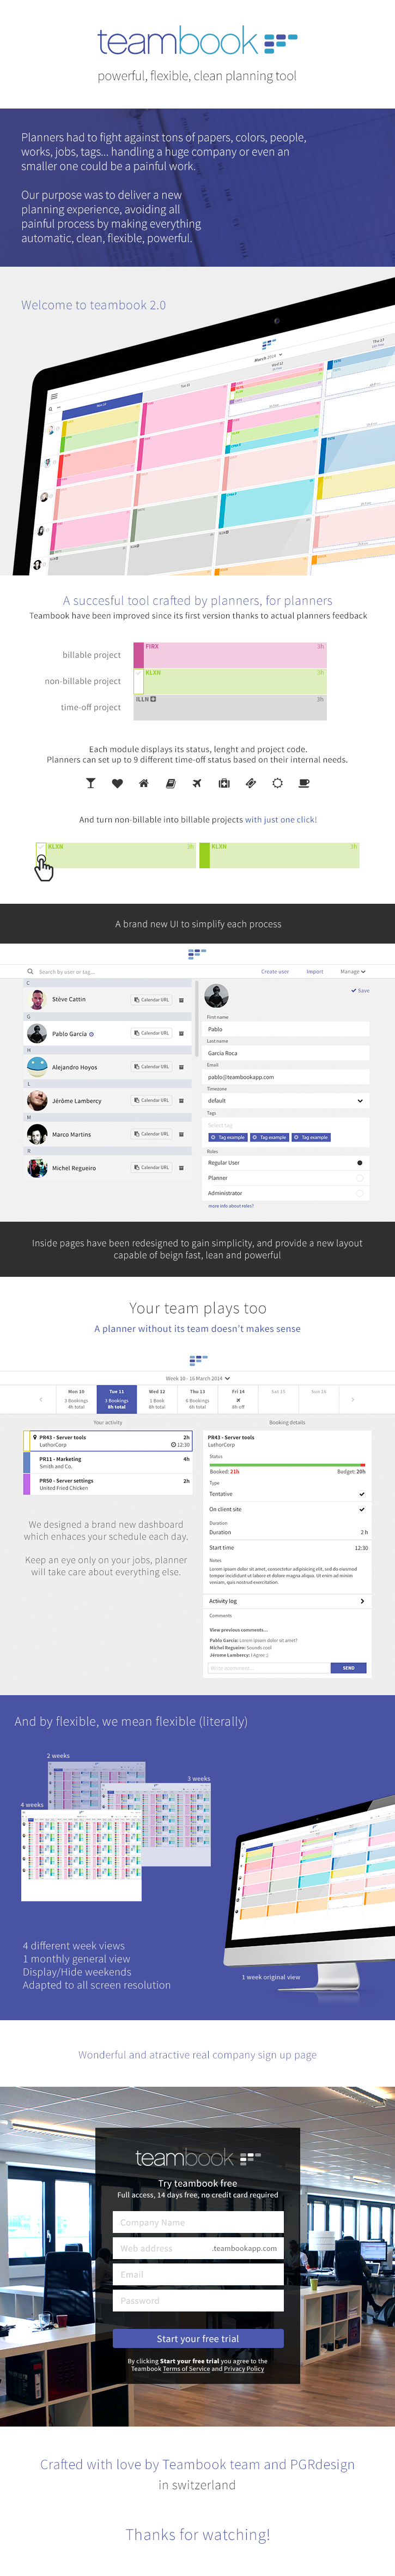 teambook-behance-port